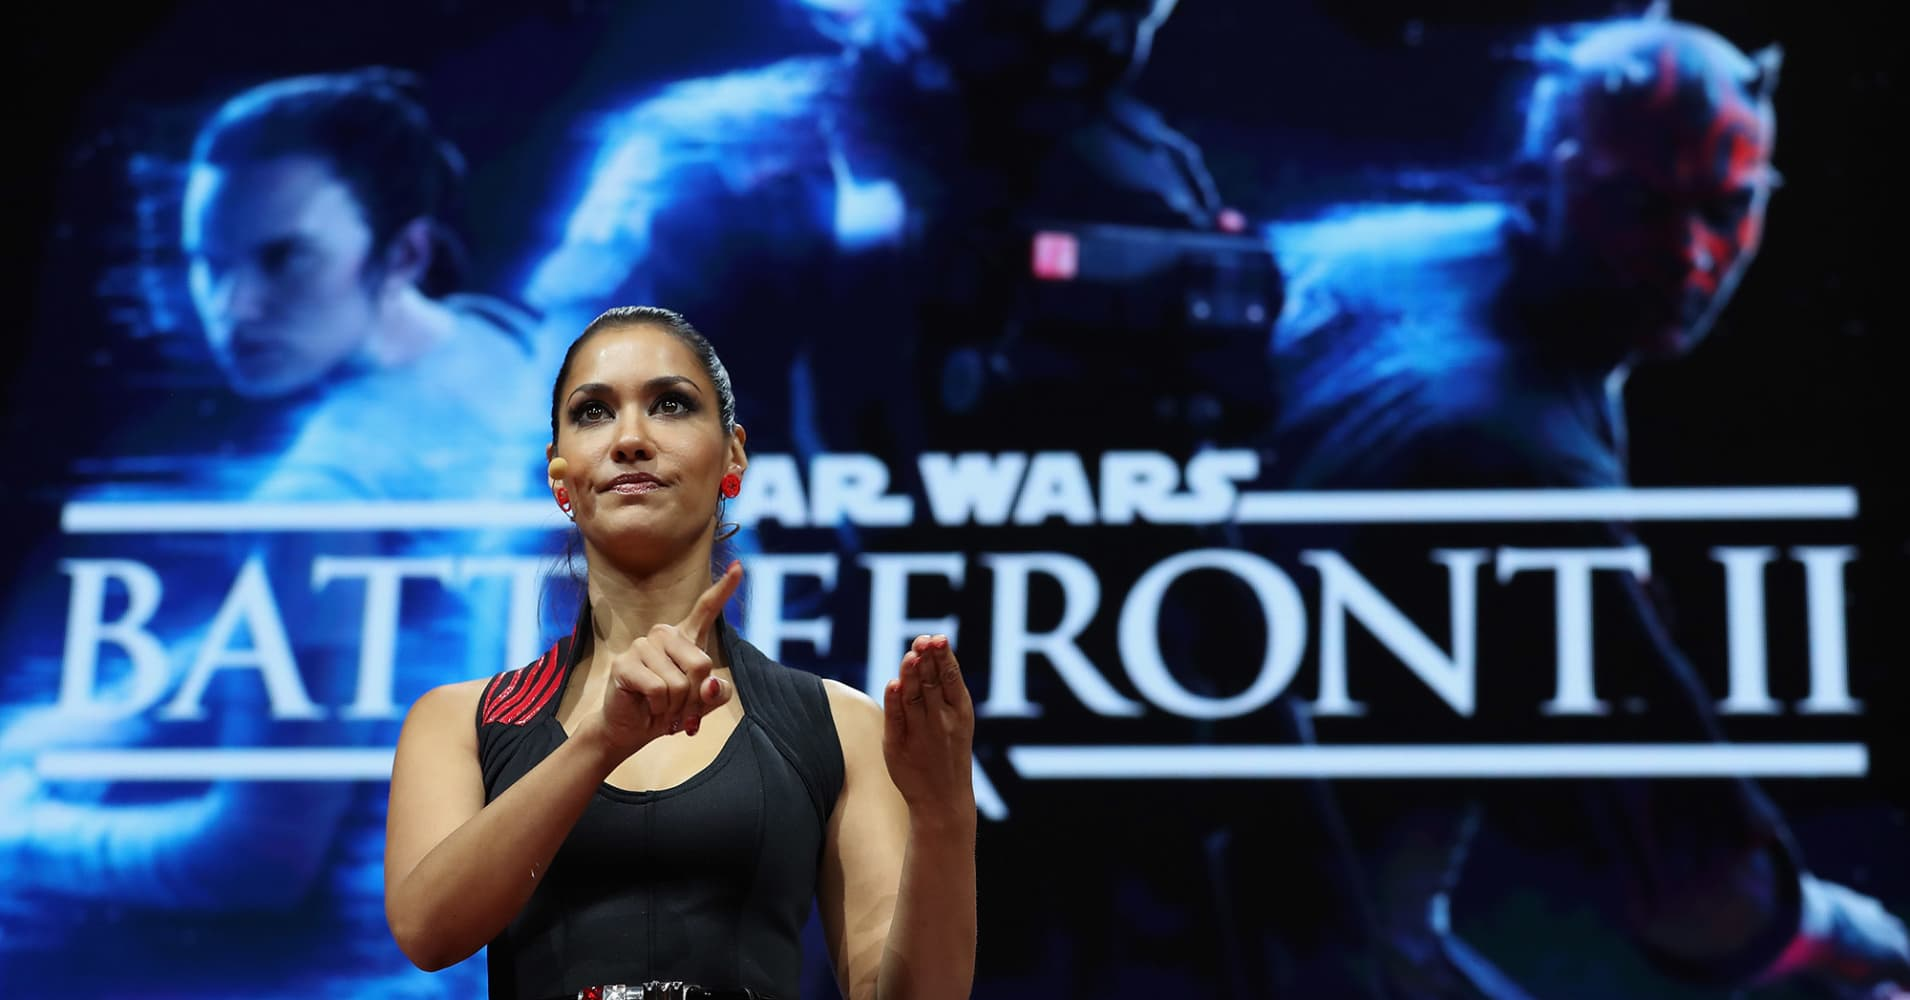 Gamers are overreacting to EA's 'Star Wars' controversy; publishers should raise prices: Analyst